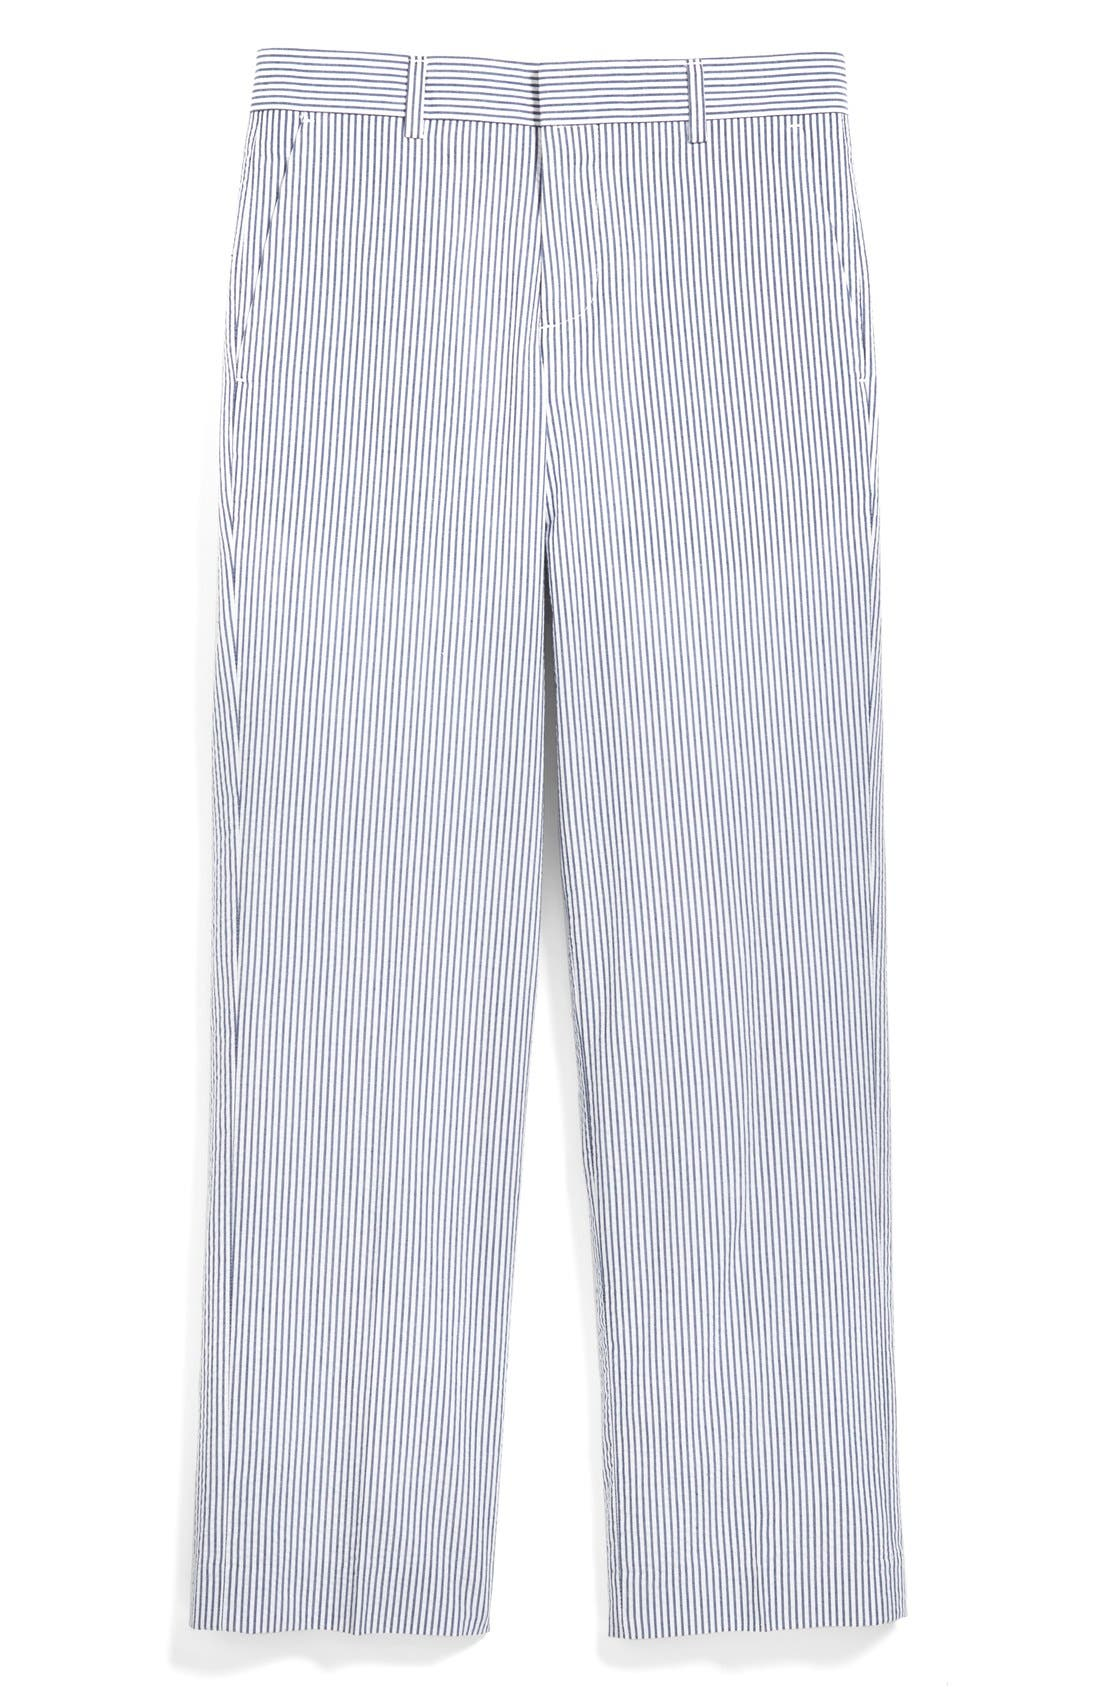 Alternate Image 1 Selected - Nordstrom 'Quentin' Seersucker Trousers (Toddler Boys, Little Boys & Big Boys)